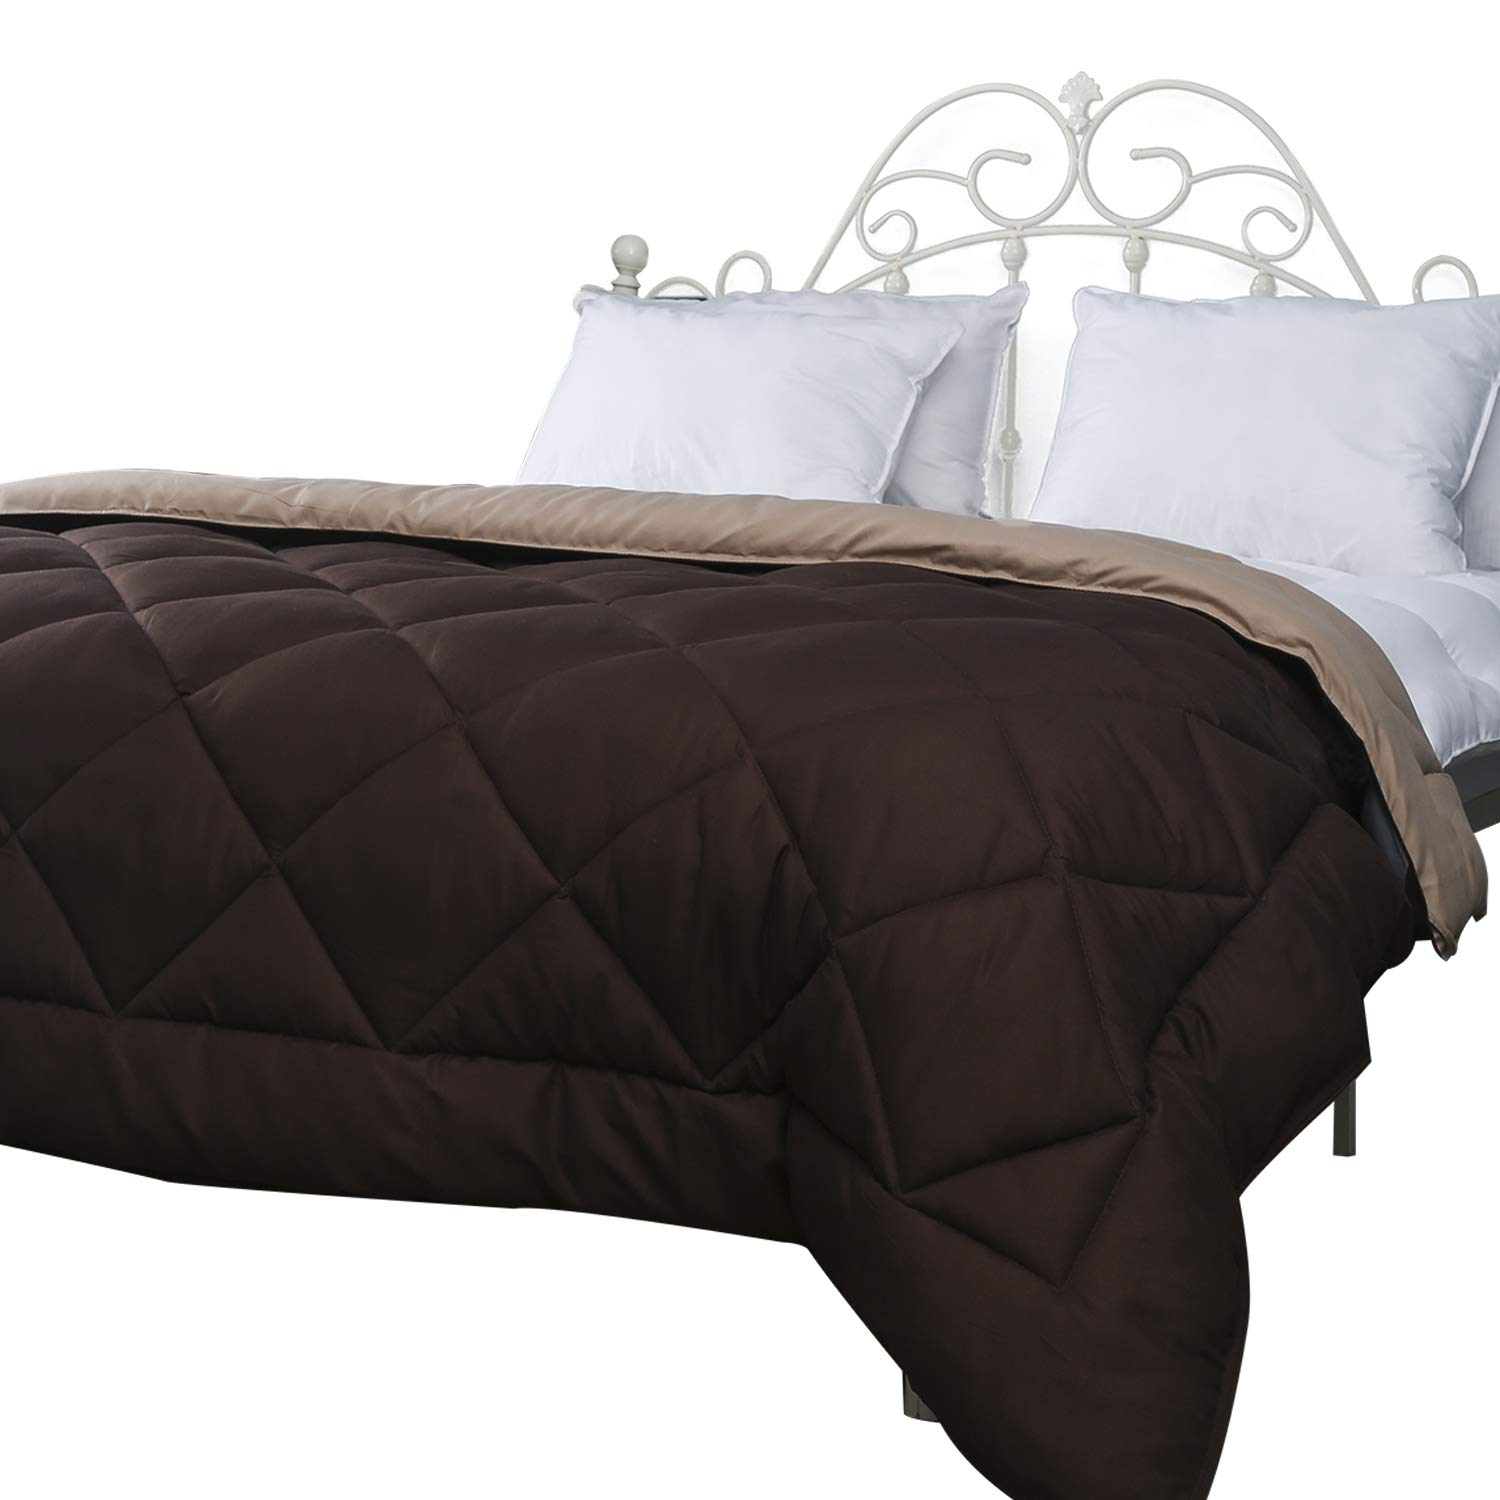 Naluka King Size Comforter,Ultra Plush Super-Soft Lightweight All Season Down Alternative Hotel Collection Solid Comforter